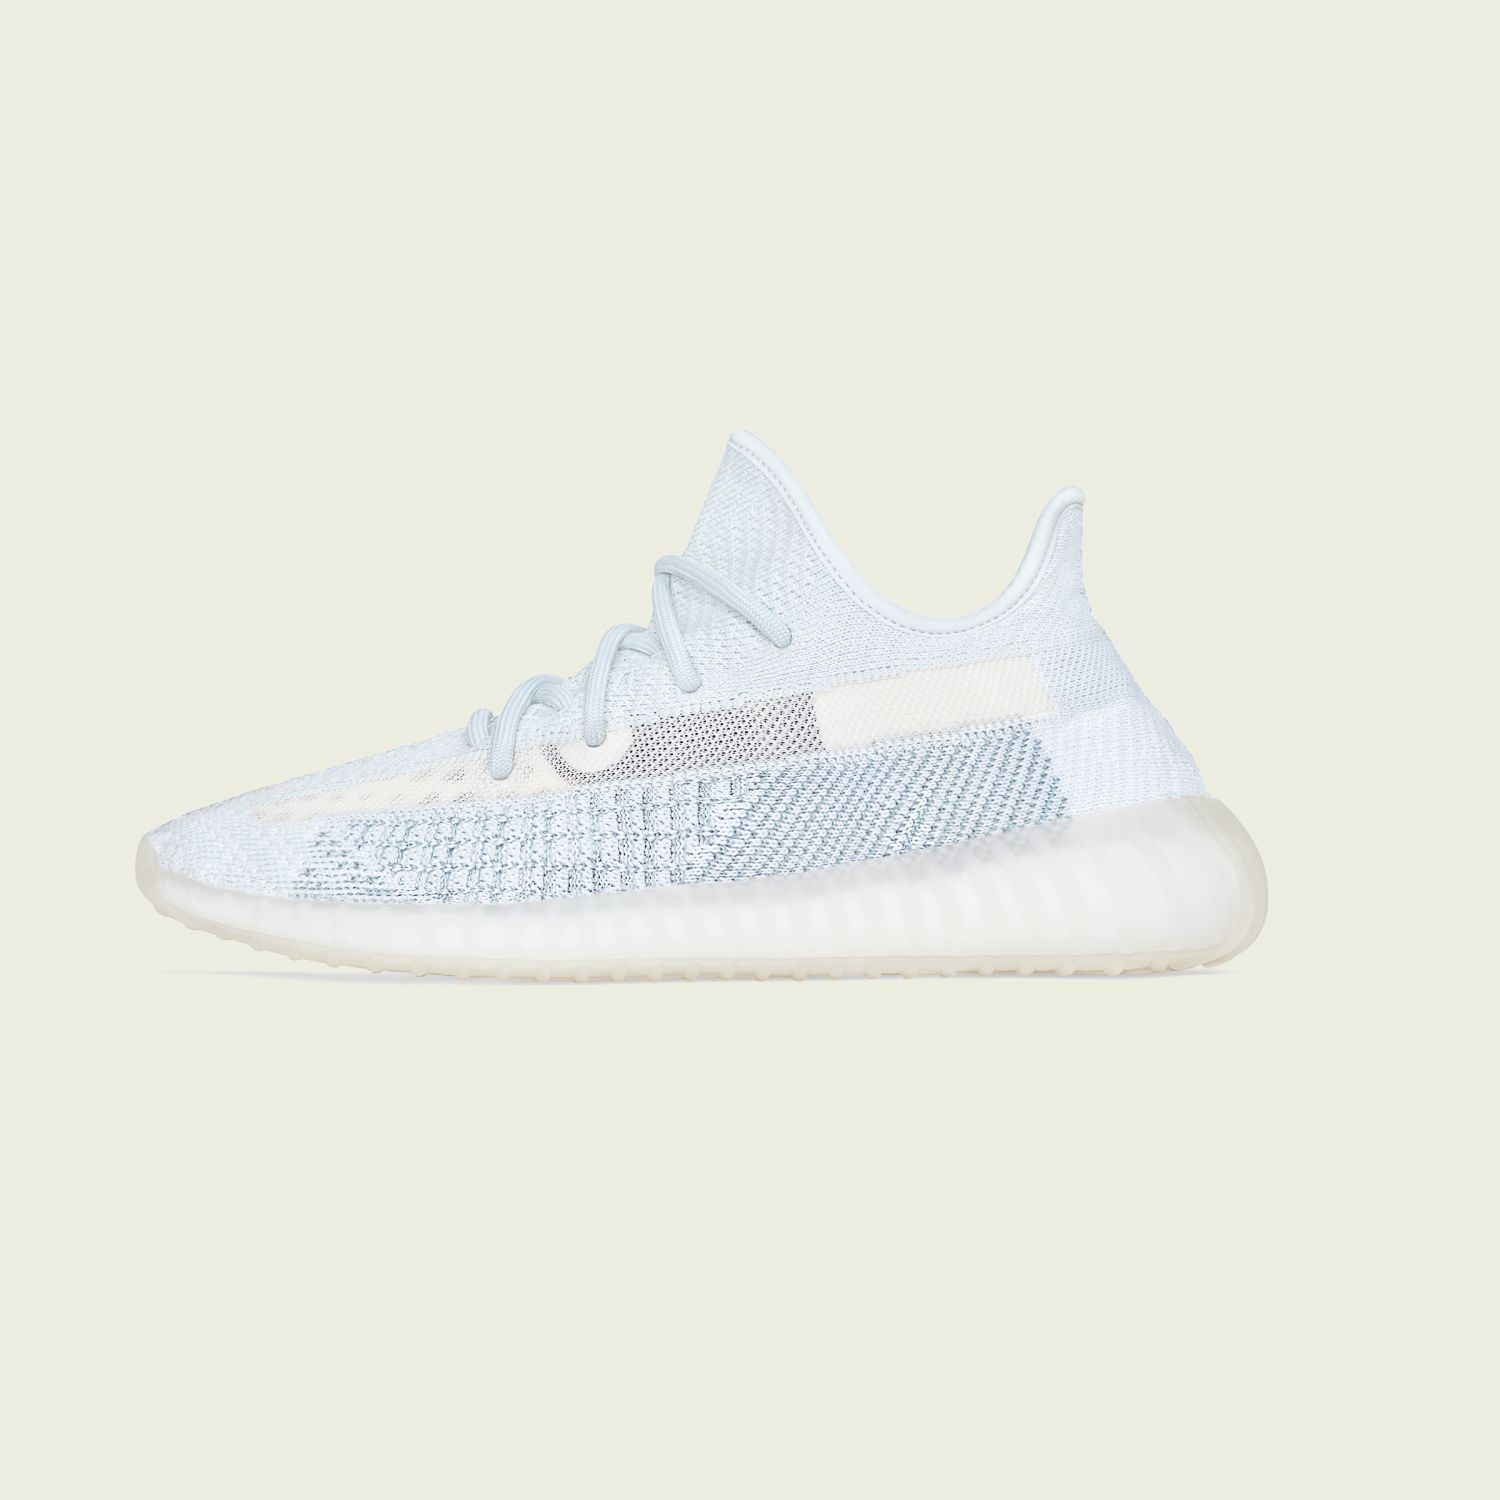 Yeezy Boost 350 V2 Cloud White (Non-Reflective) [2]